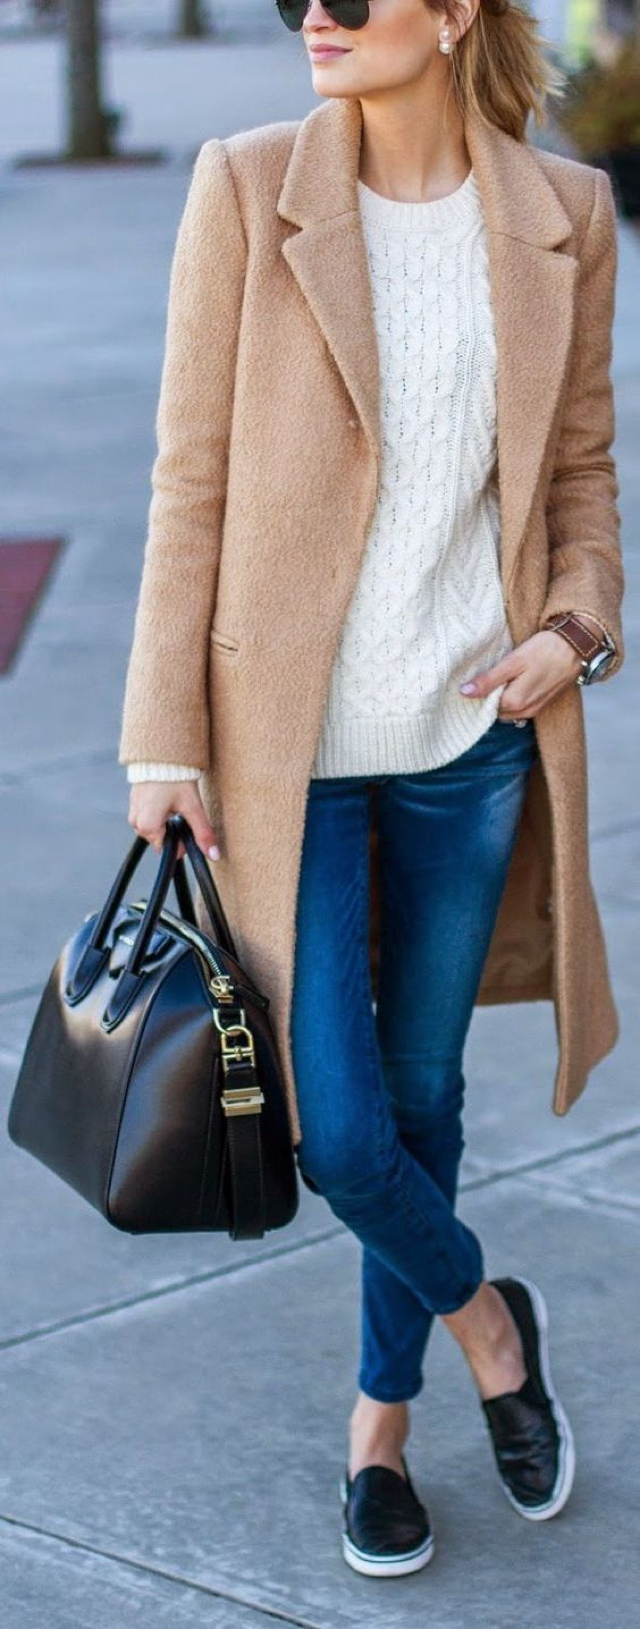 camel coat black sneakers